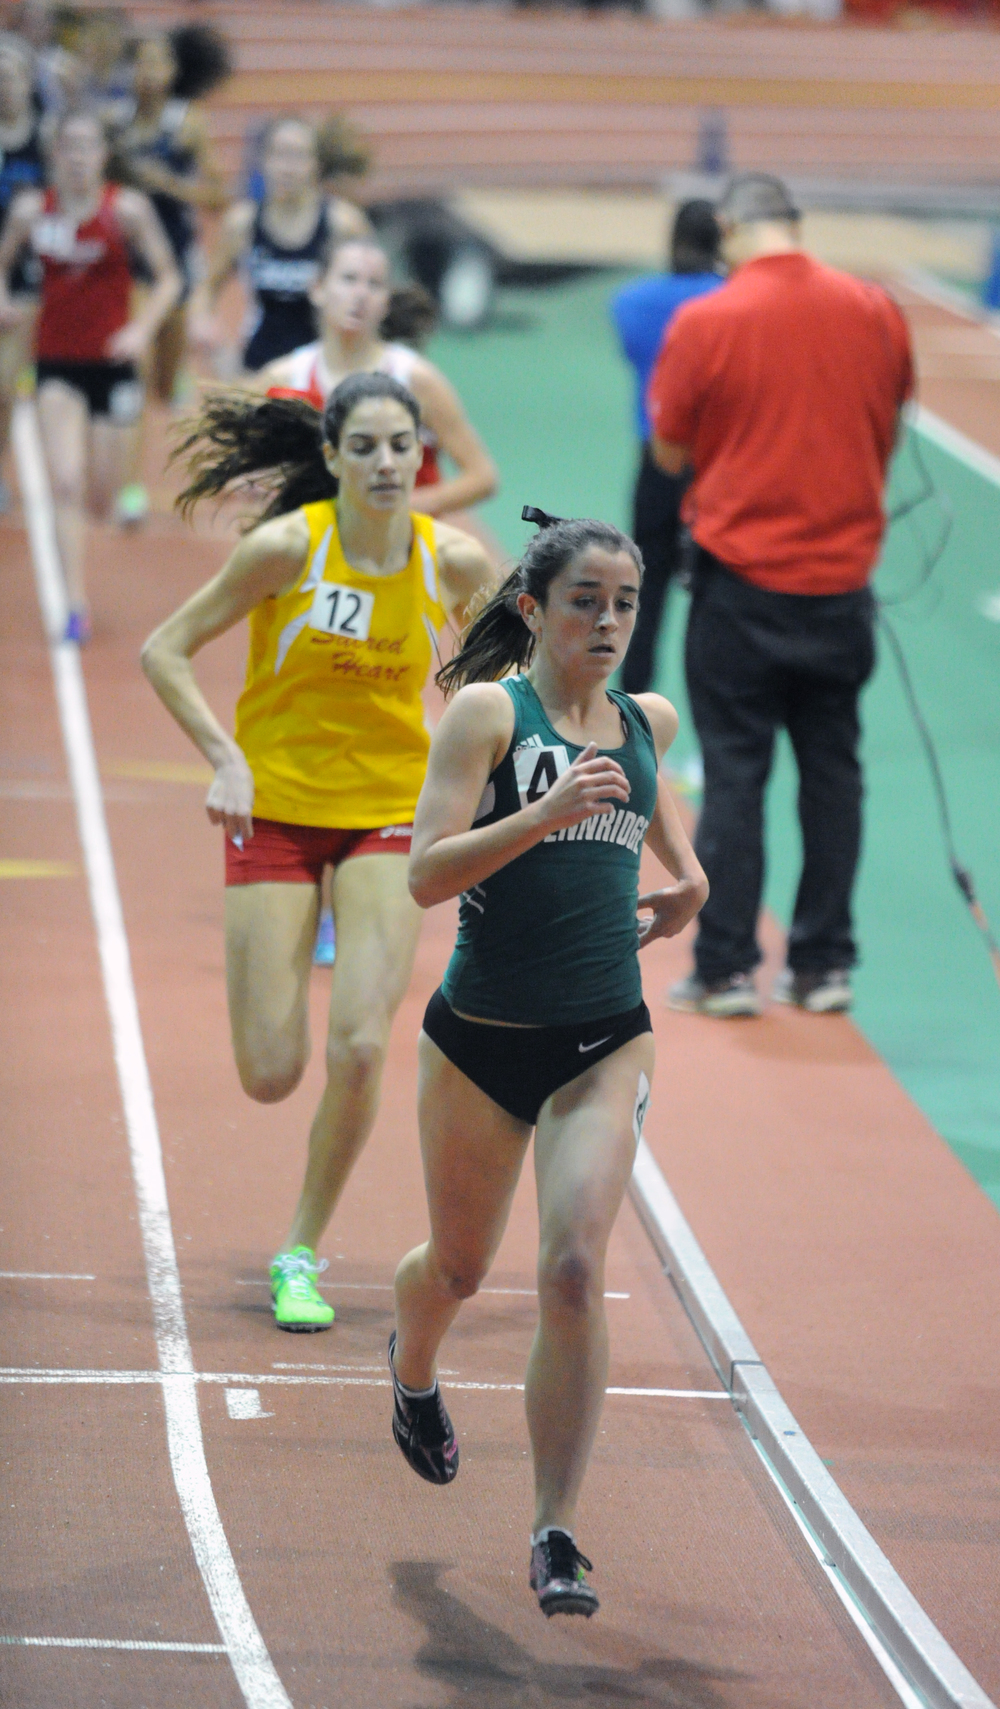 Marissa Sheva turns to another gear at the NYRR Millrose Games Trials, where she would place second in 4:56.94. Photo courtesy of Don Rich